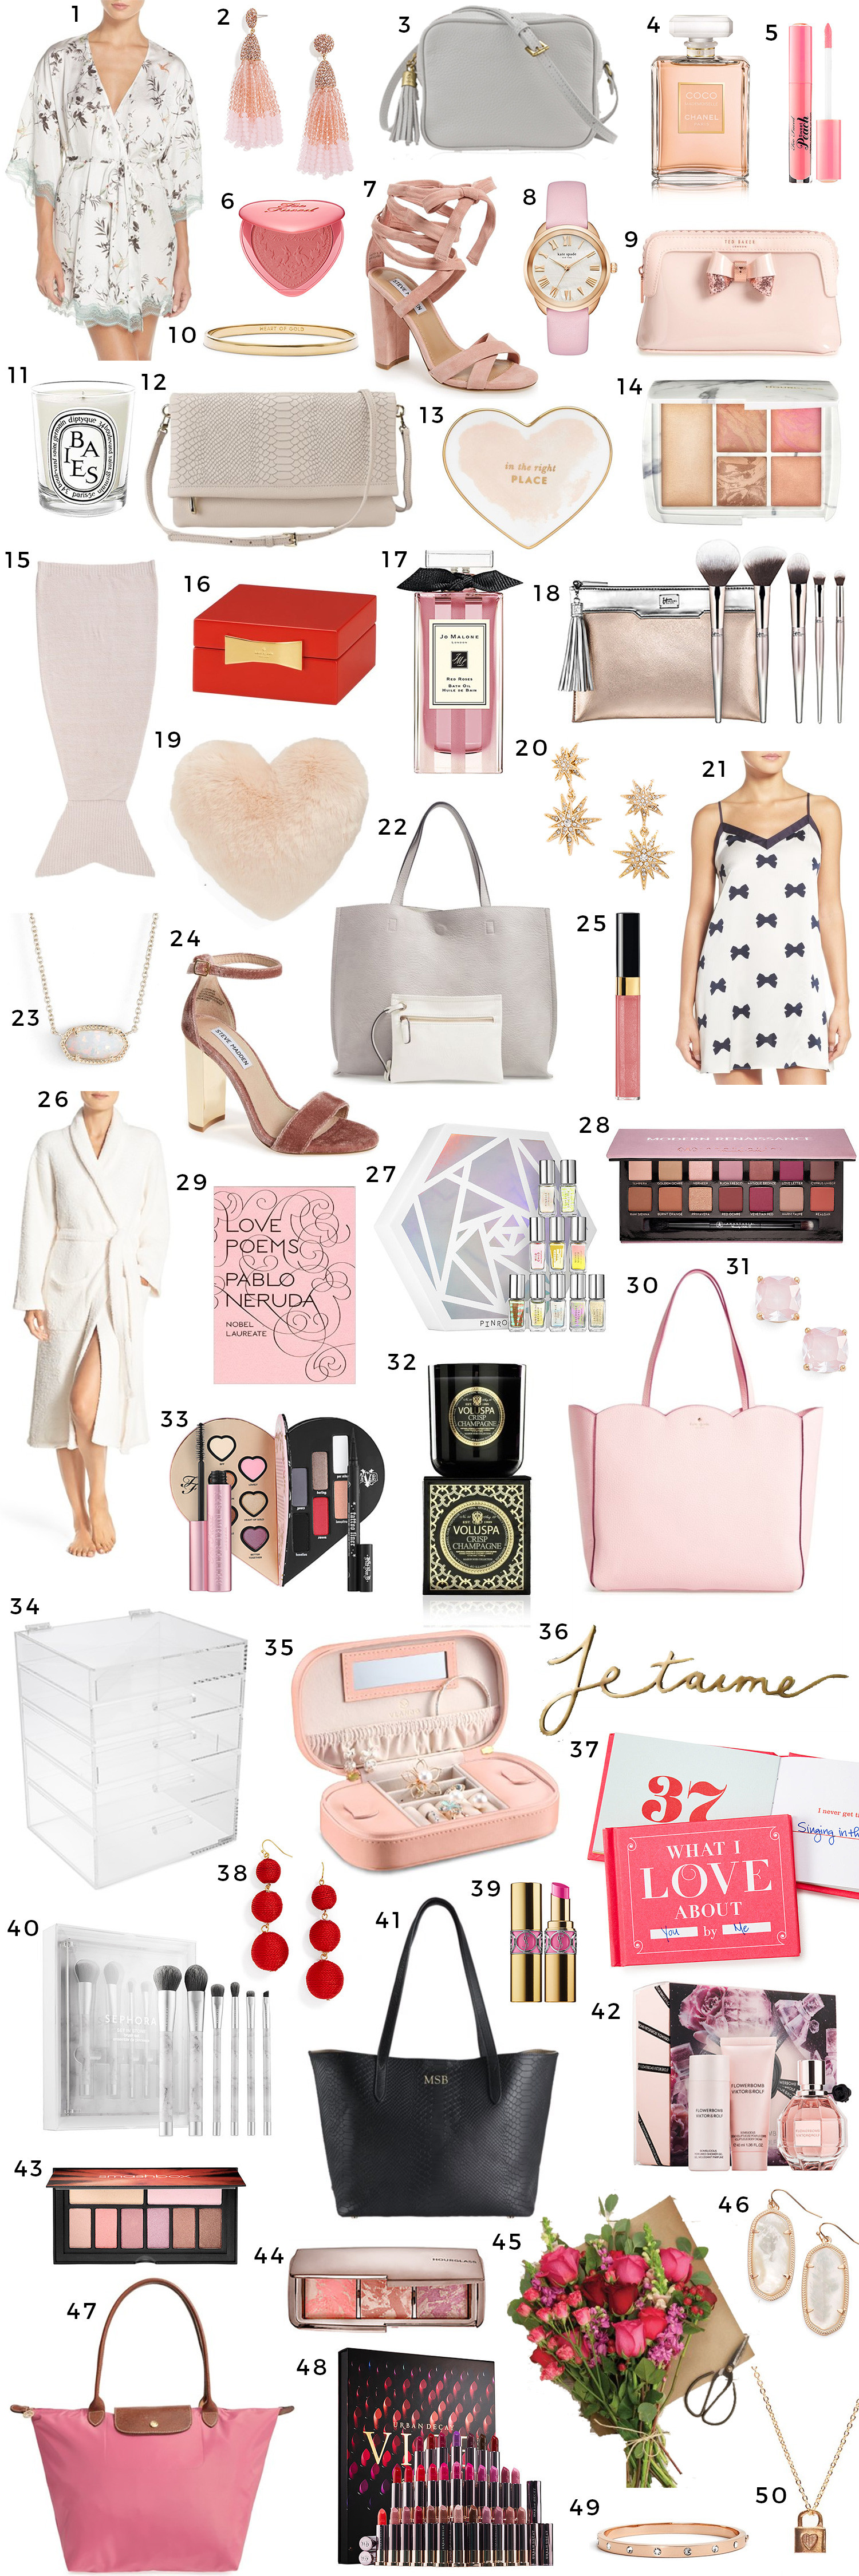 Valentines Gift Ideas For Women  The Best Valentine s Day Gift Ideas for Women